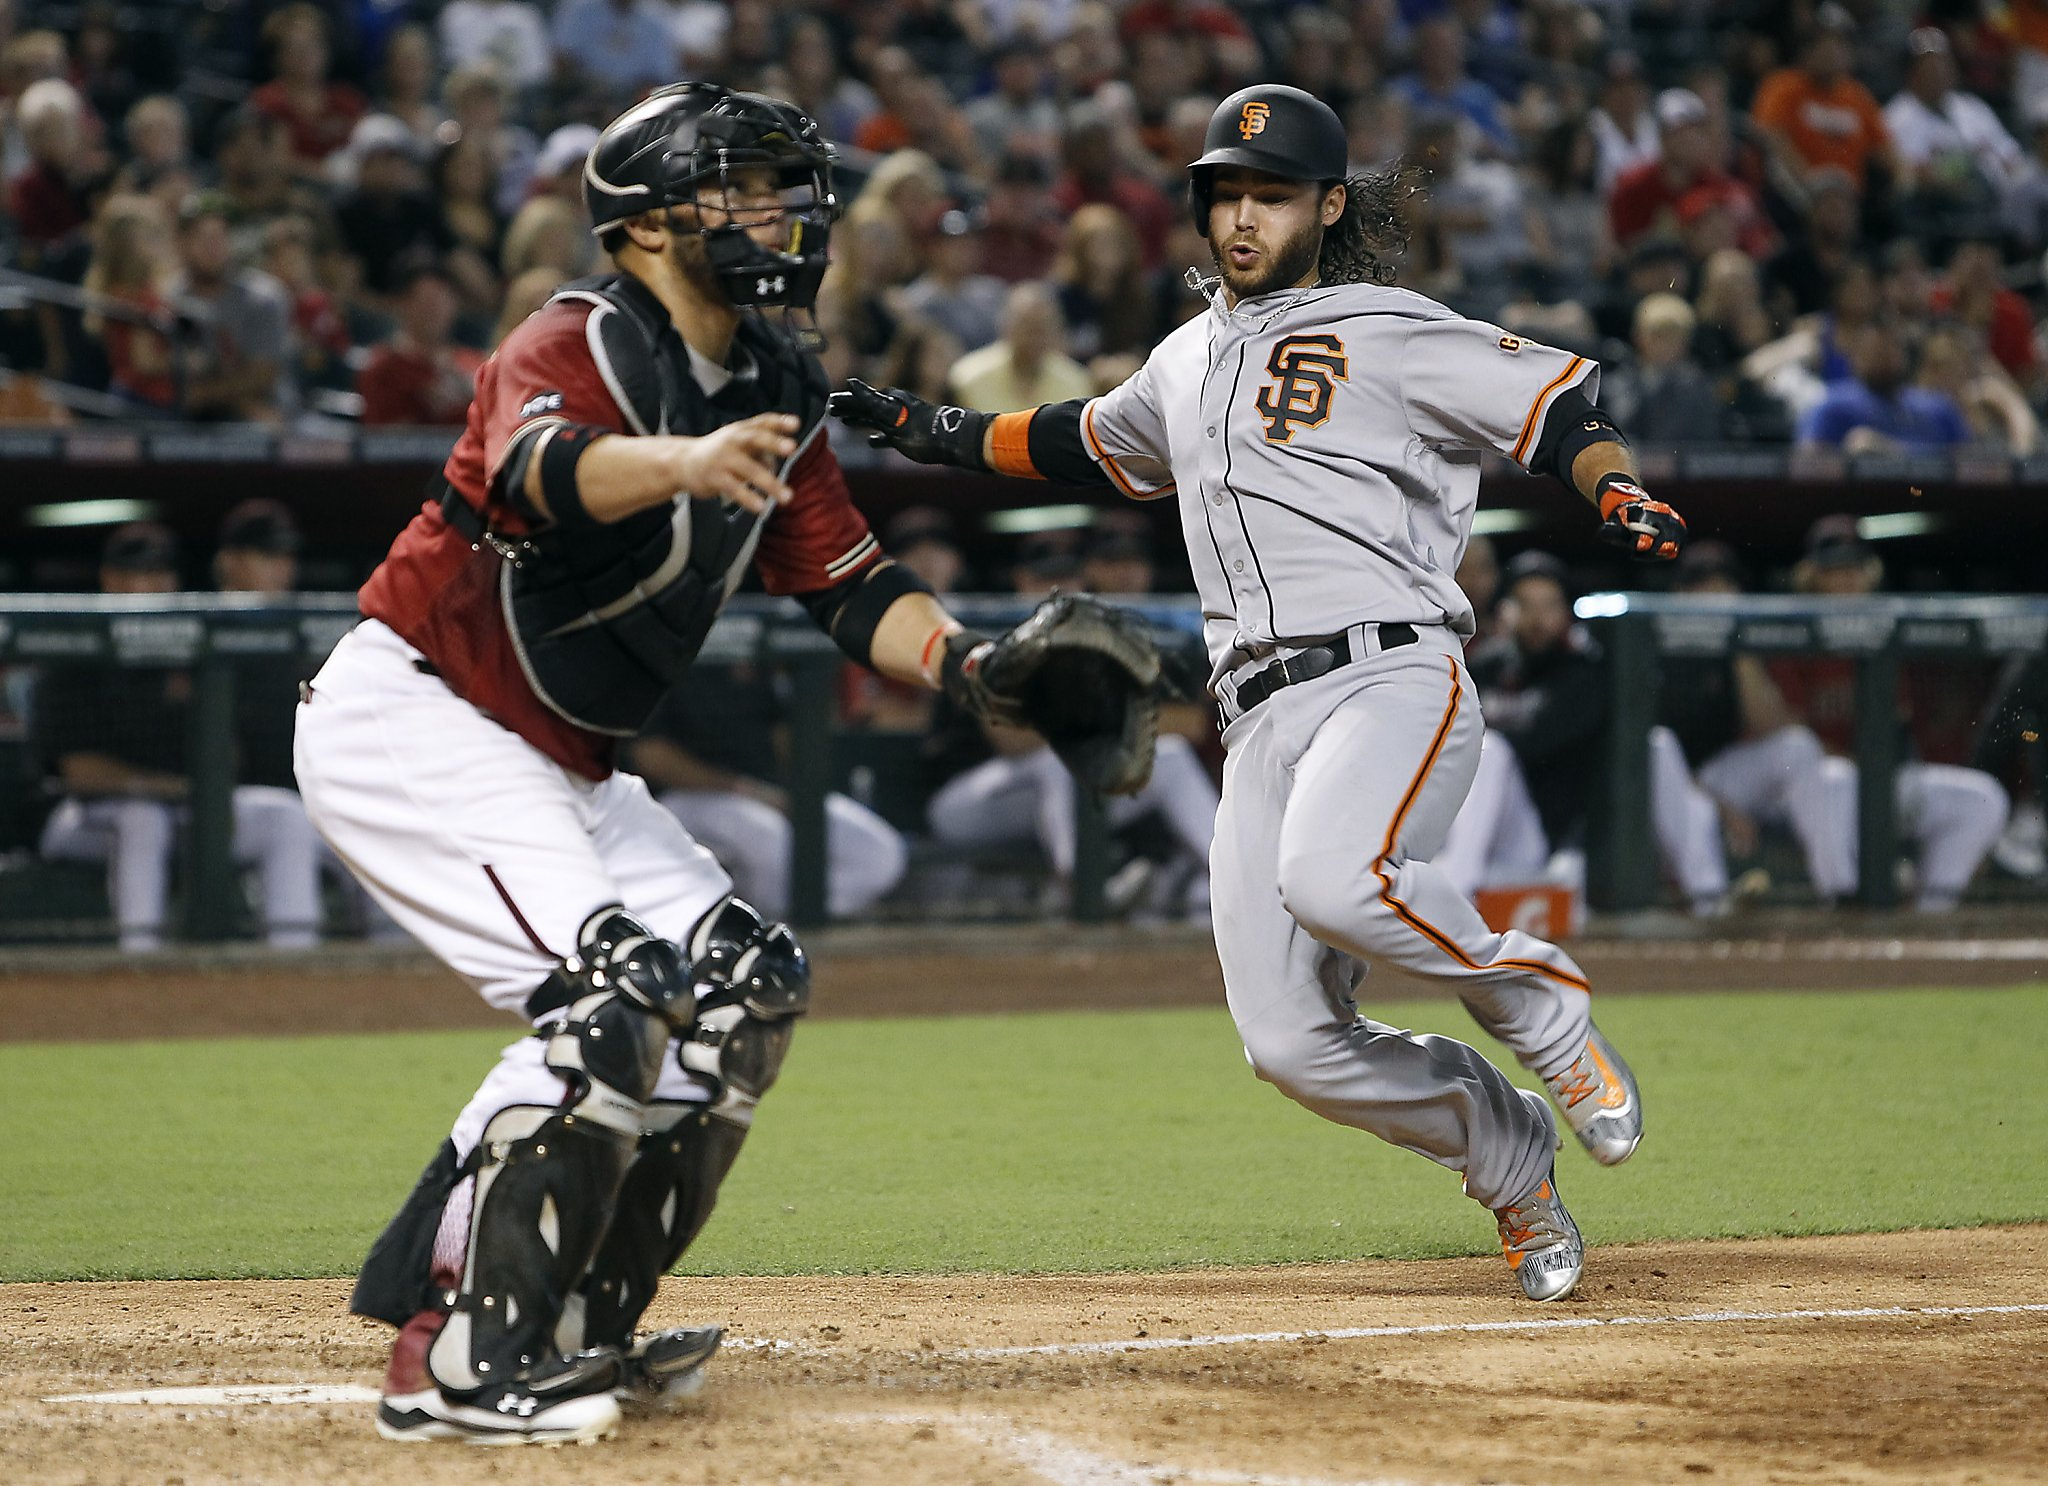 Giants sweep Diamondbacks, gain on Dodgers again - SFGate